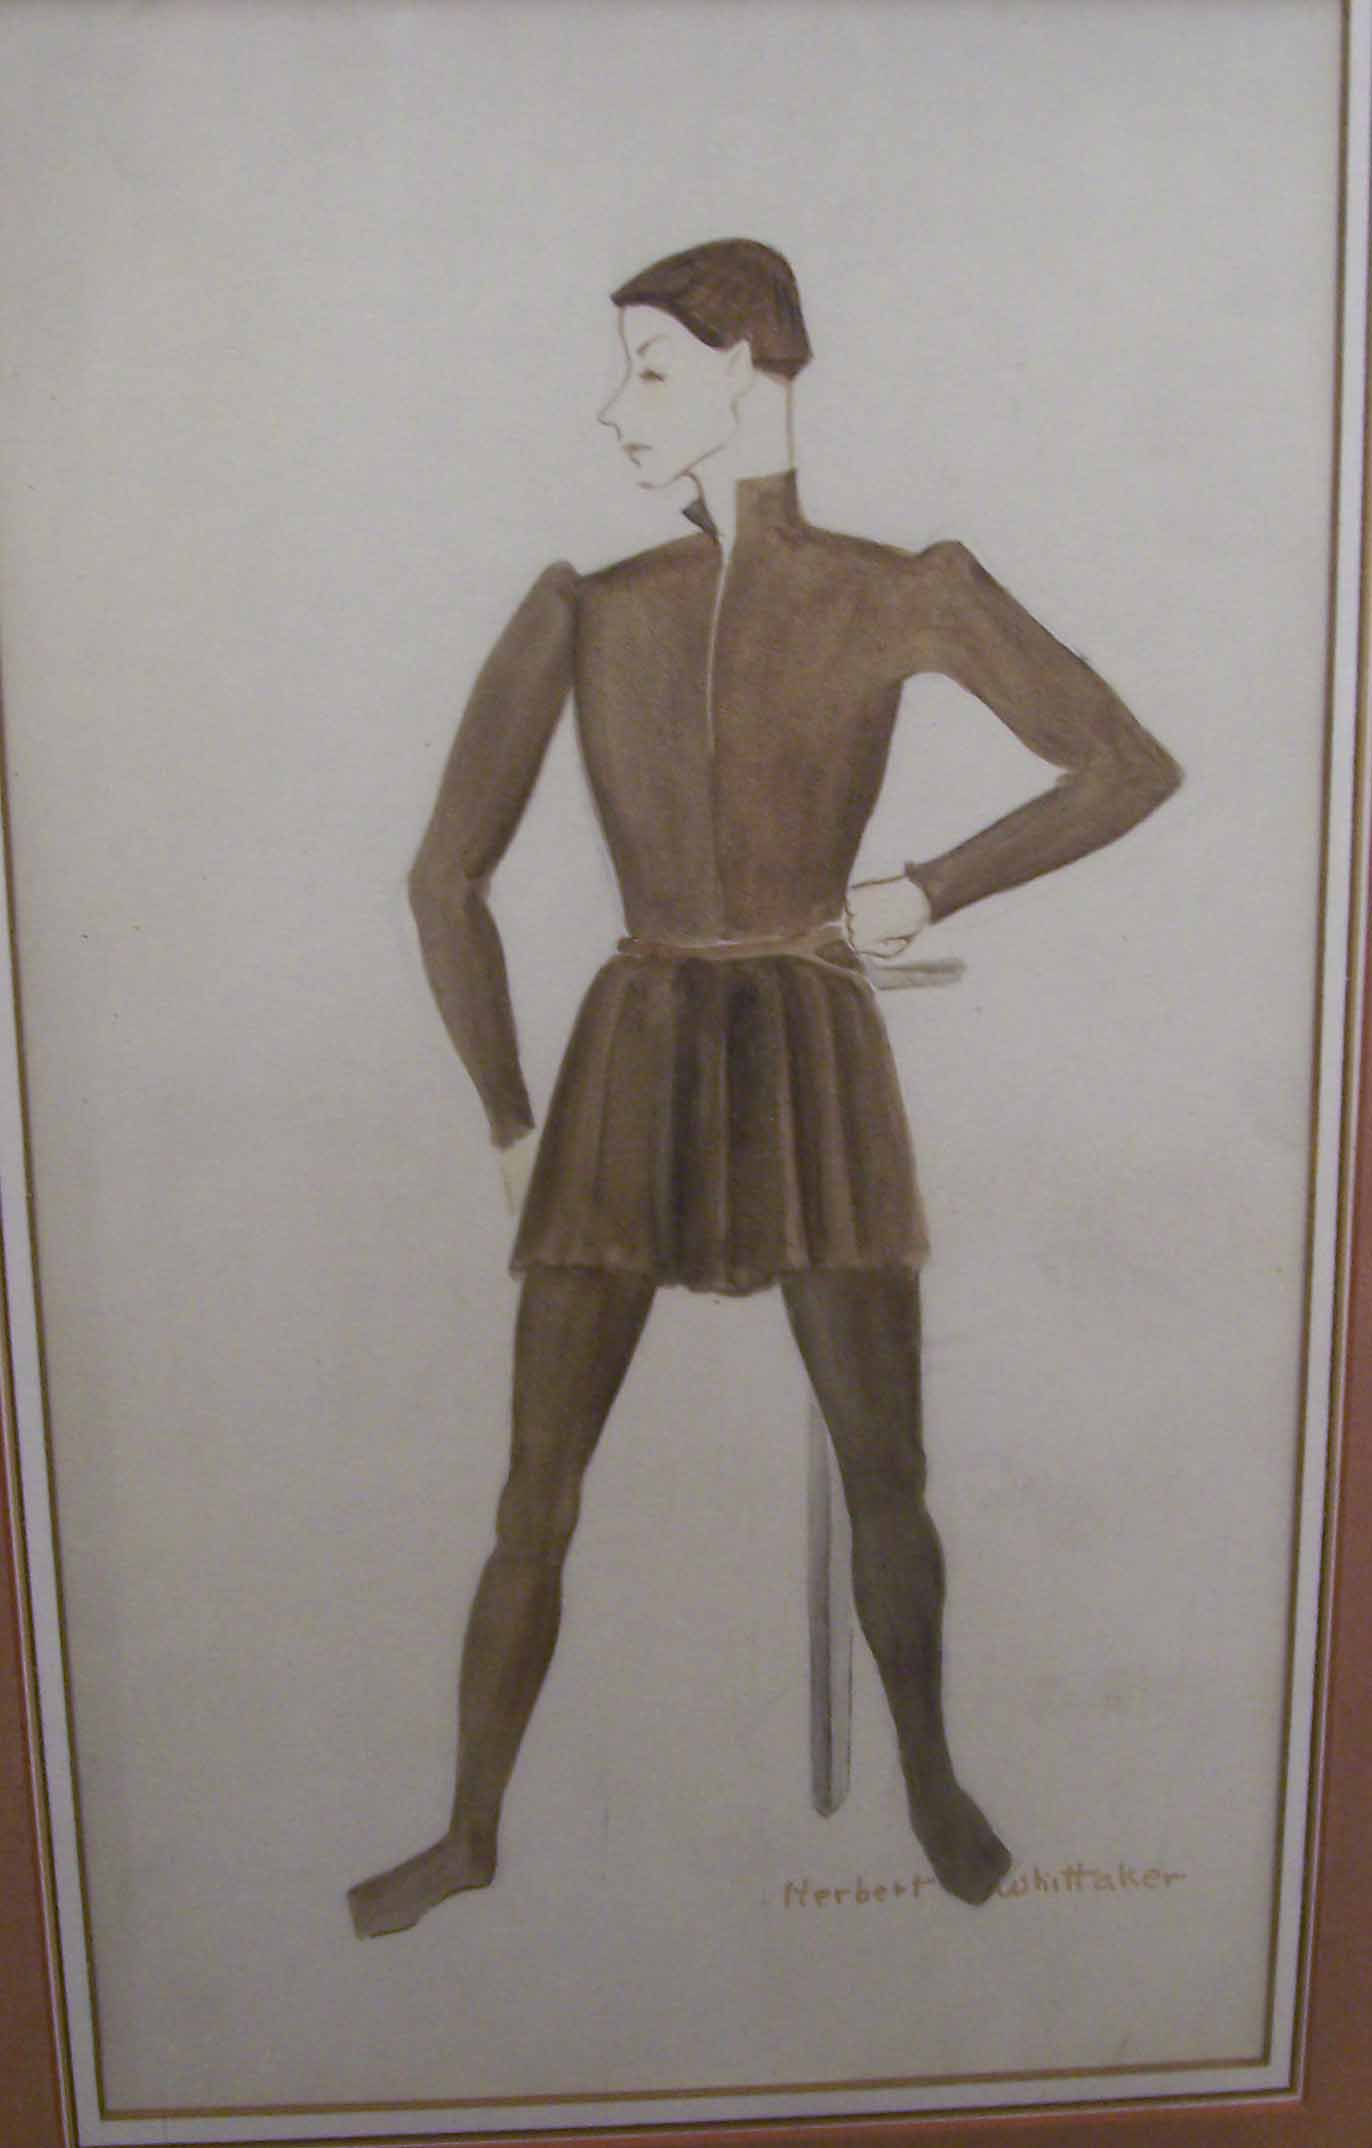 Whittaker costume design for Saint Joan